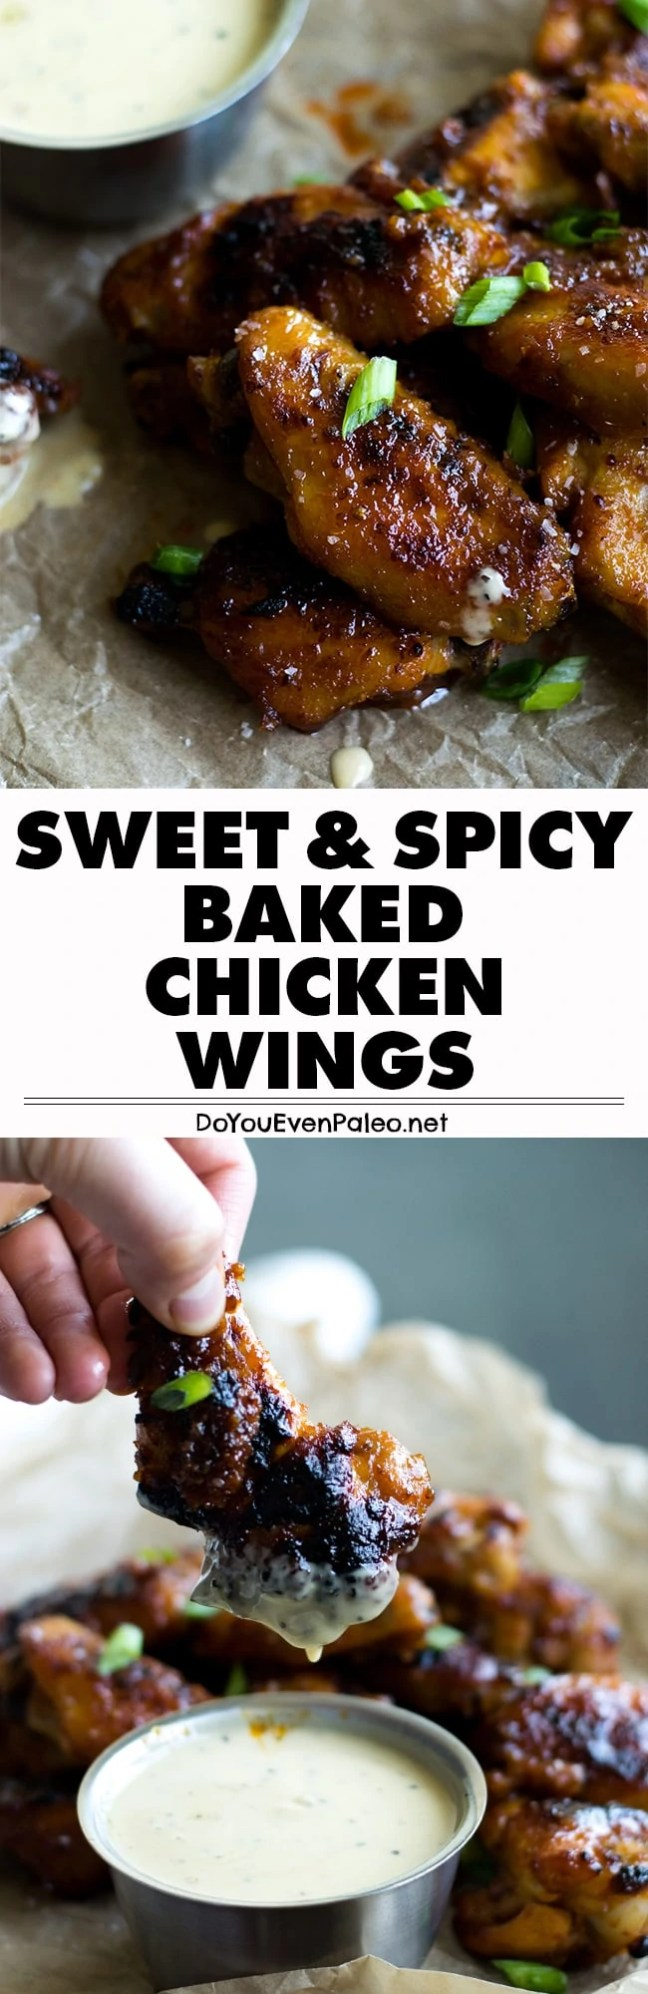 Sticky sweet with a smoldering heat, these paleo baked chicken wings are WAY easier than you'd think! | DoYouEvenPaleo.net